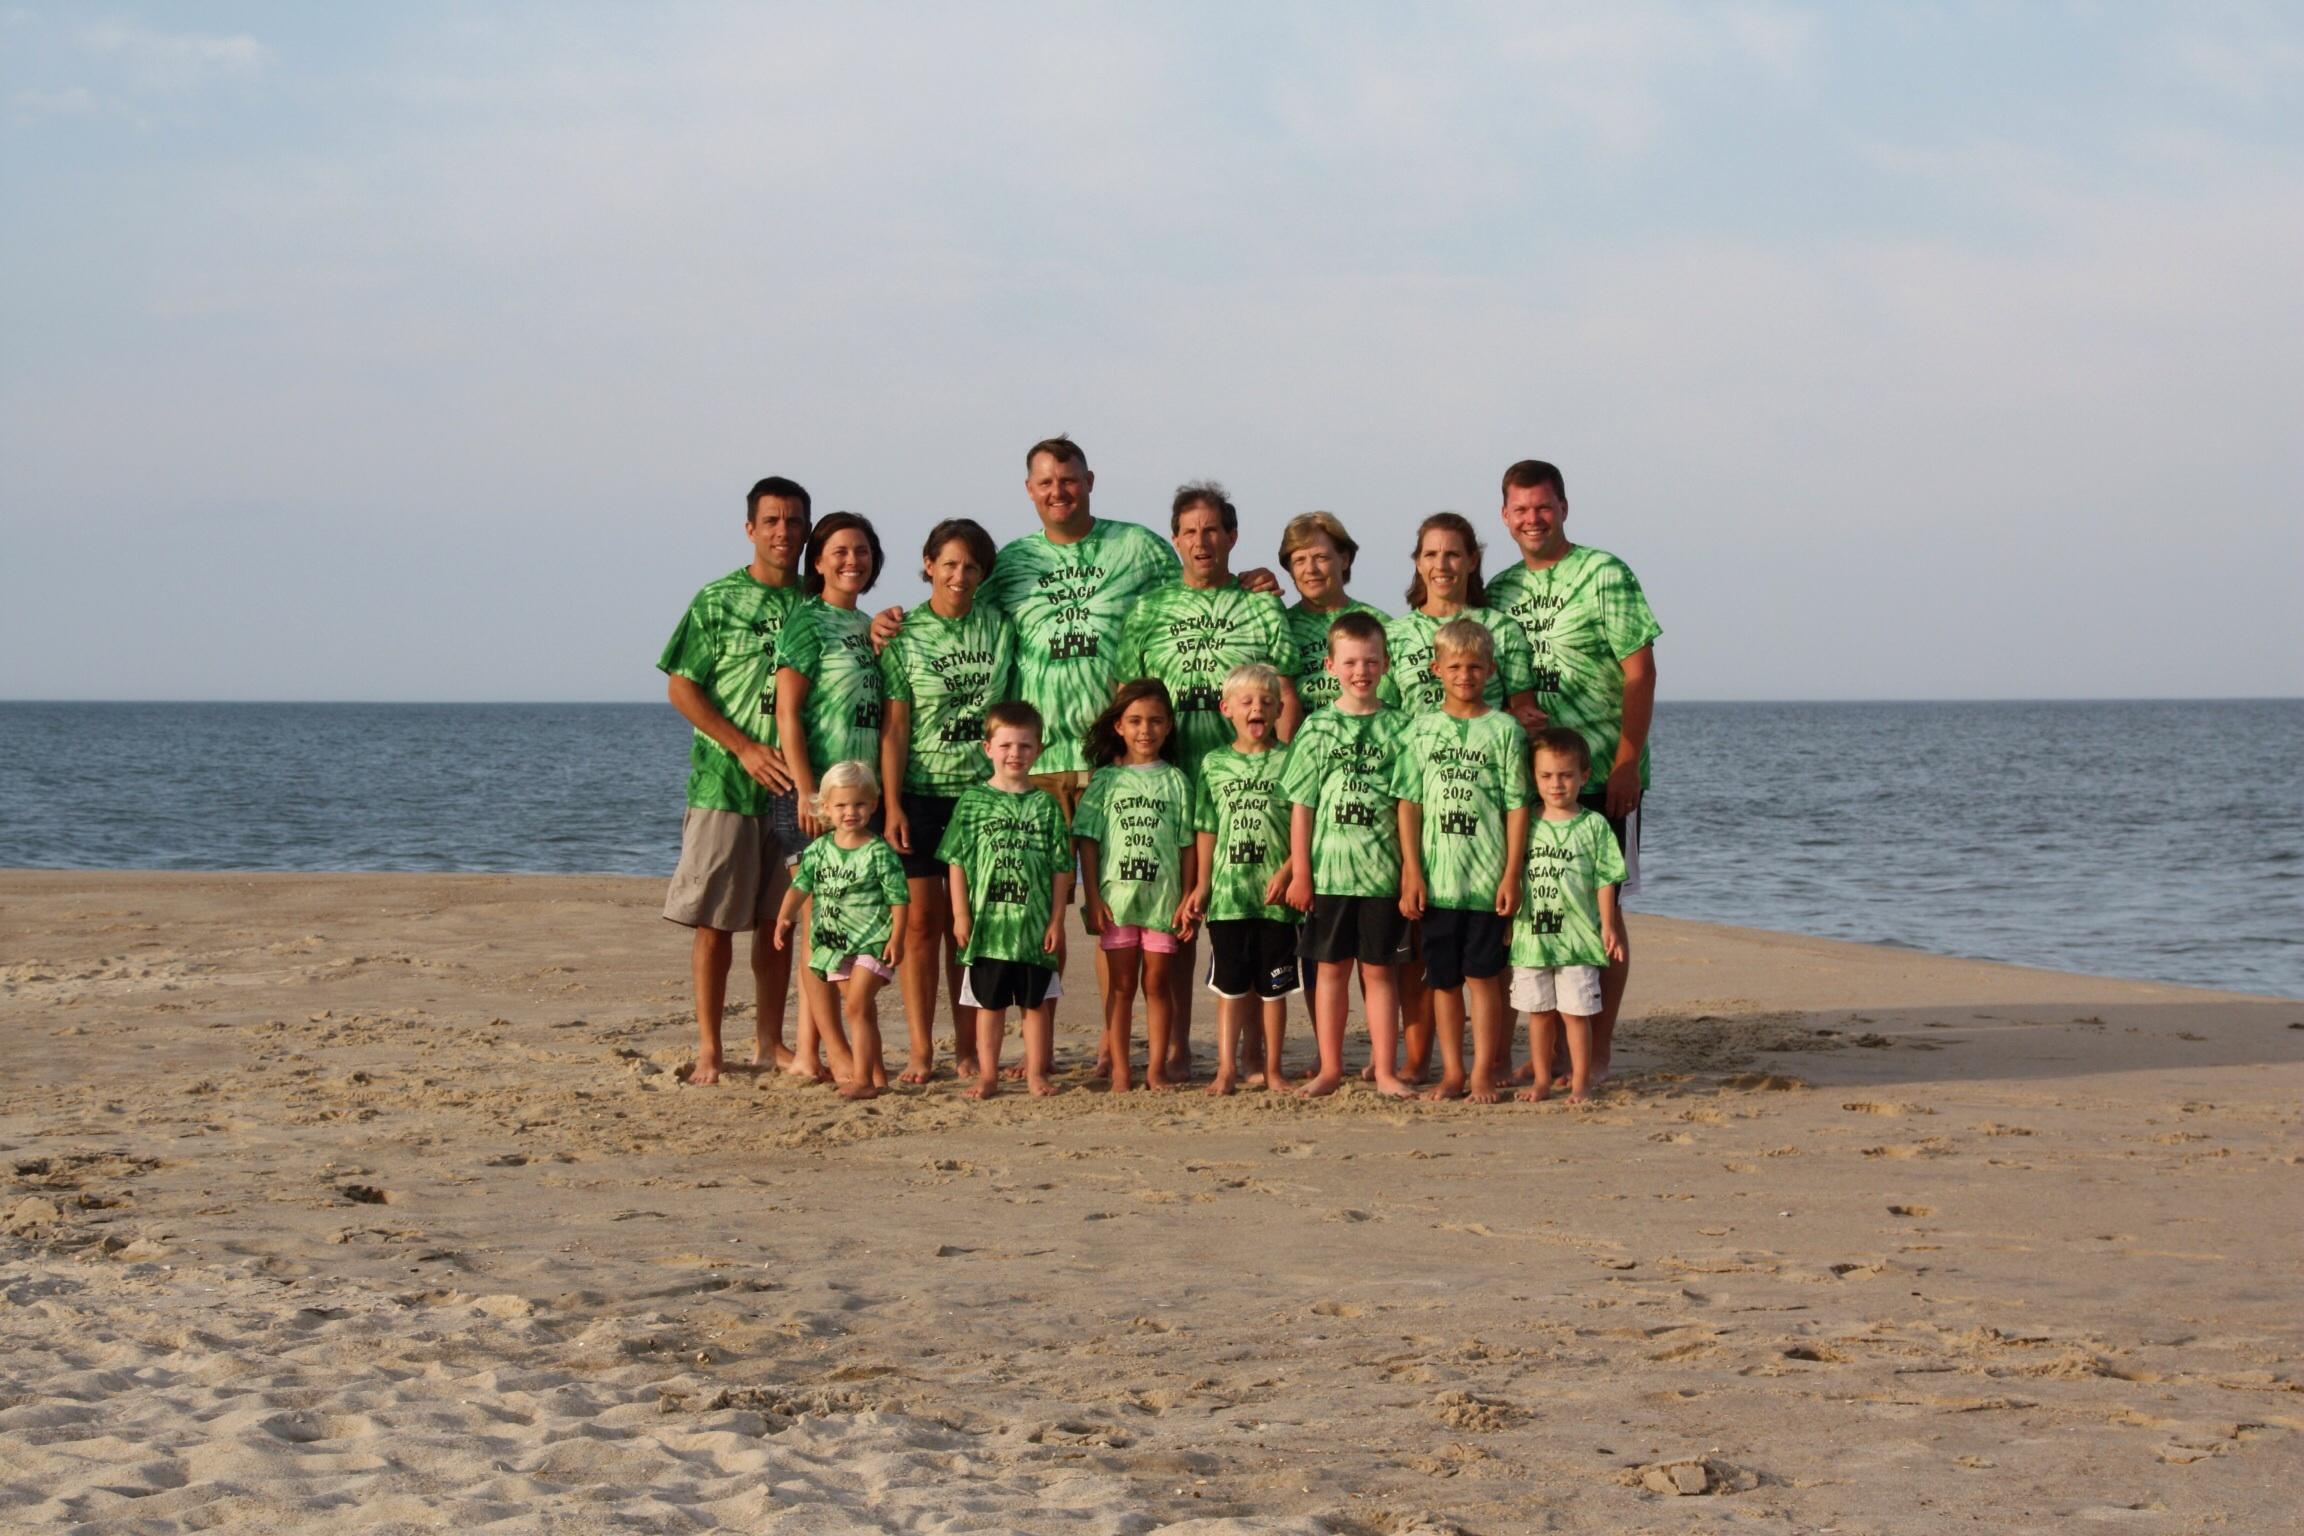 Custom T Shirts for Life Is Great At The Beach   Shirt Design Ideas